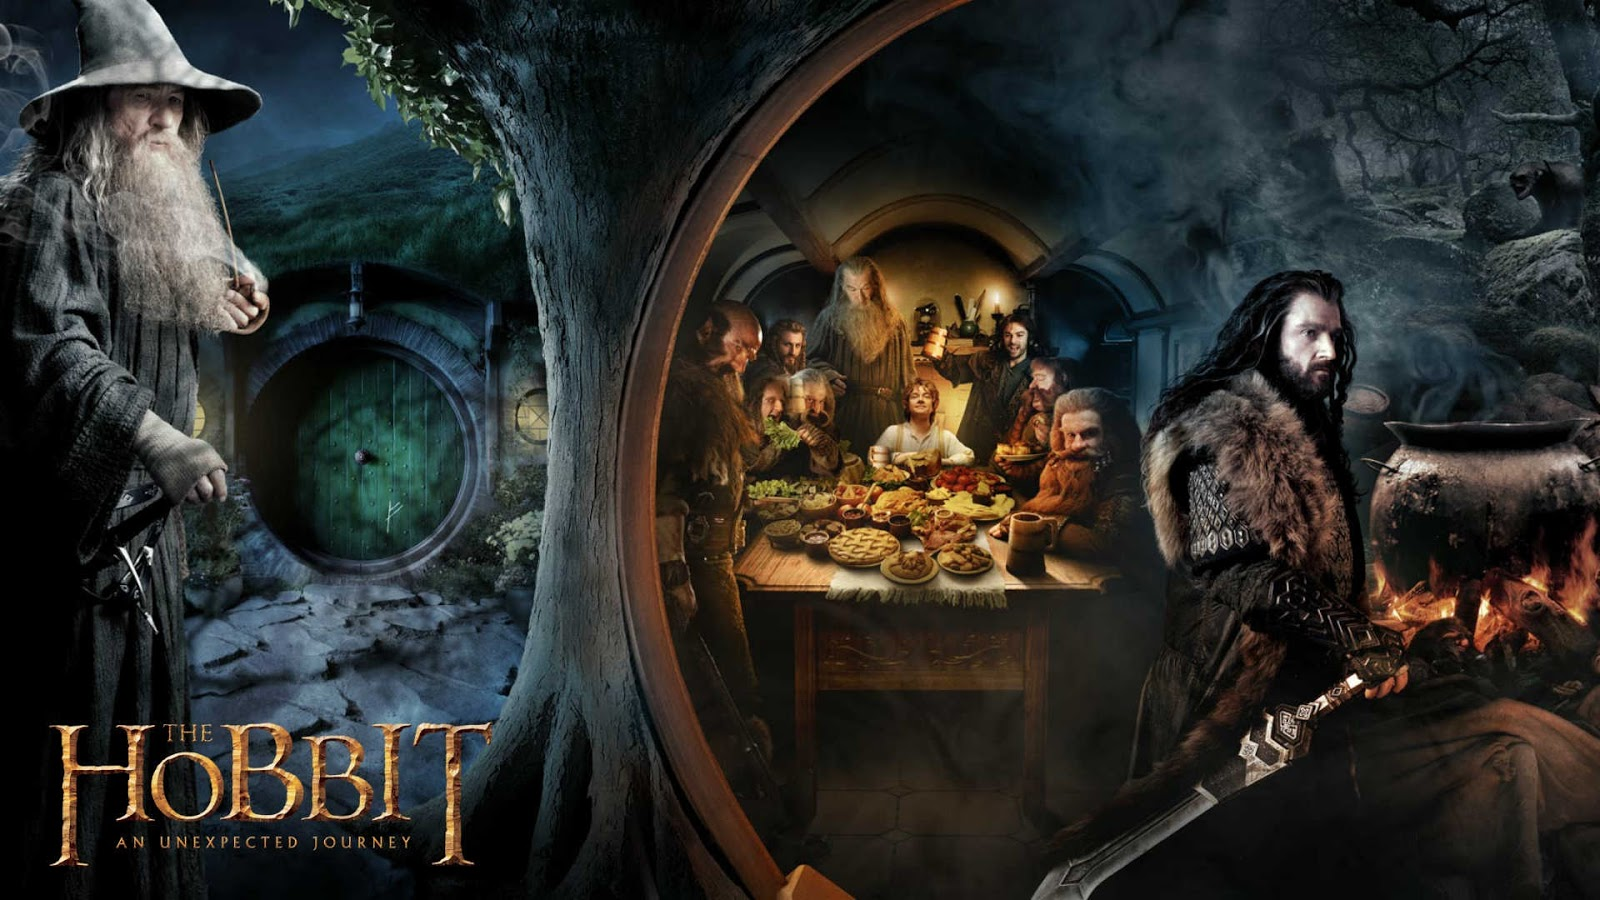 the hobbit movie review Movie review: peter jackson is back to doing what many believe he does best of all: juicing-up those fantastically fruity books of jrr tolkien for the big screen.